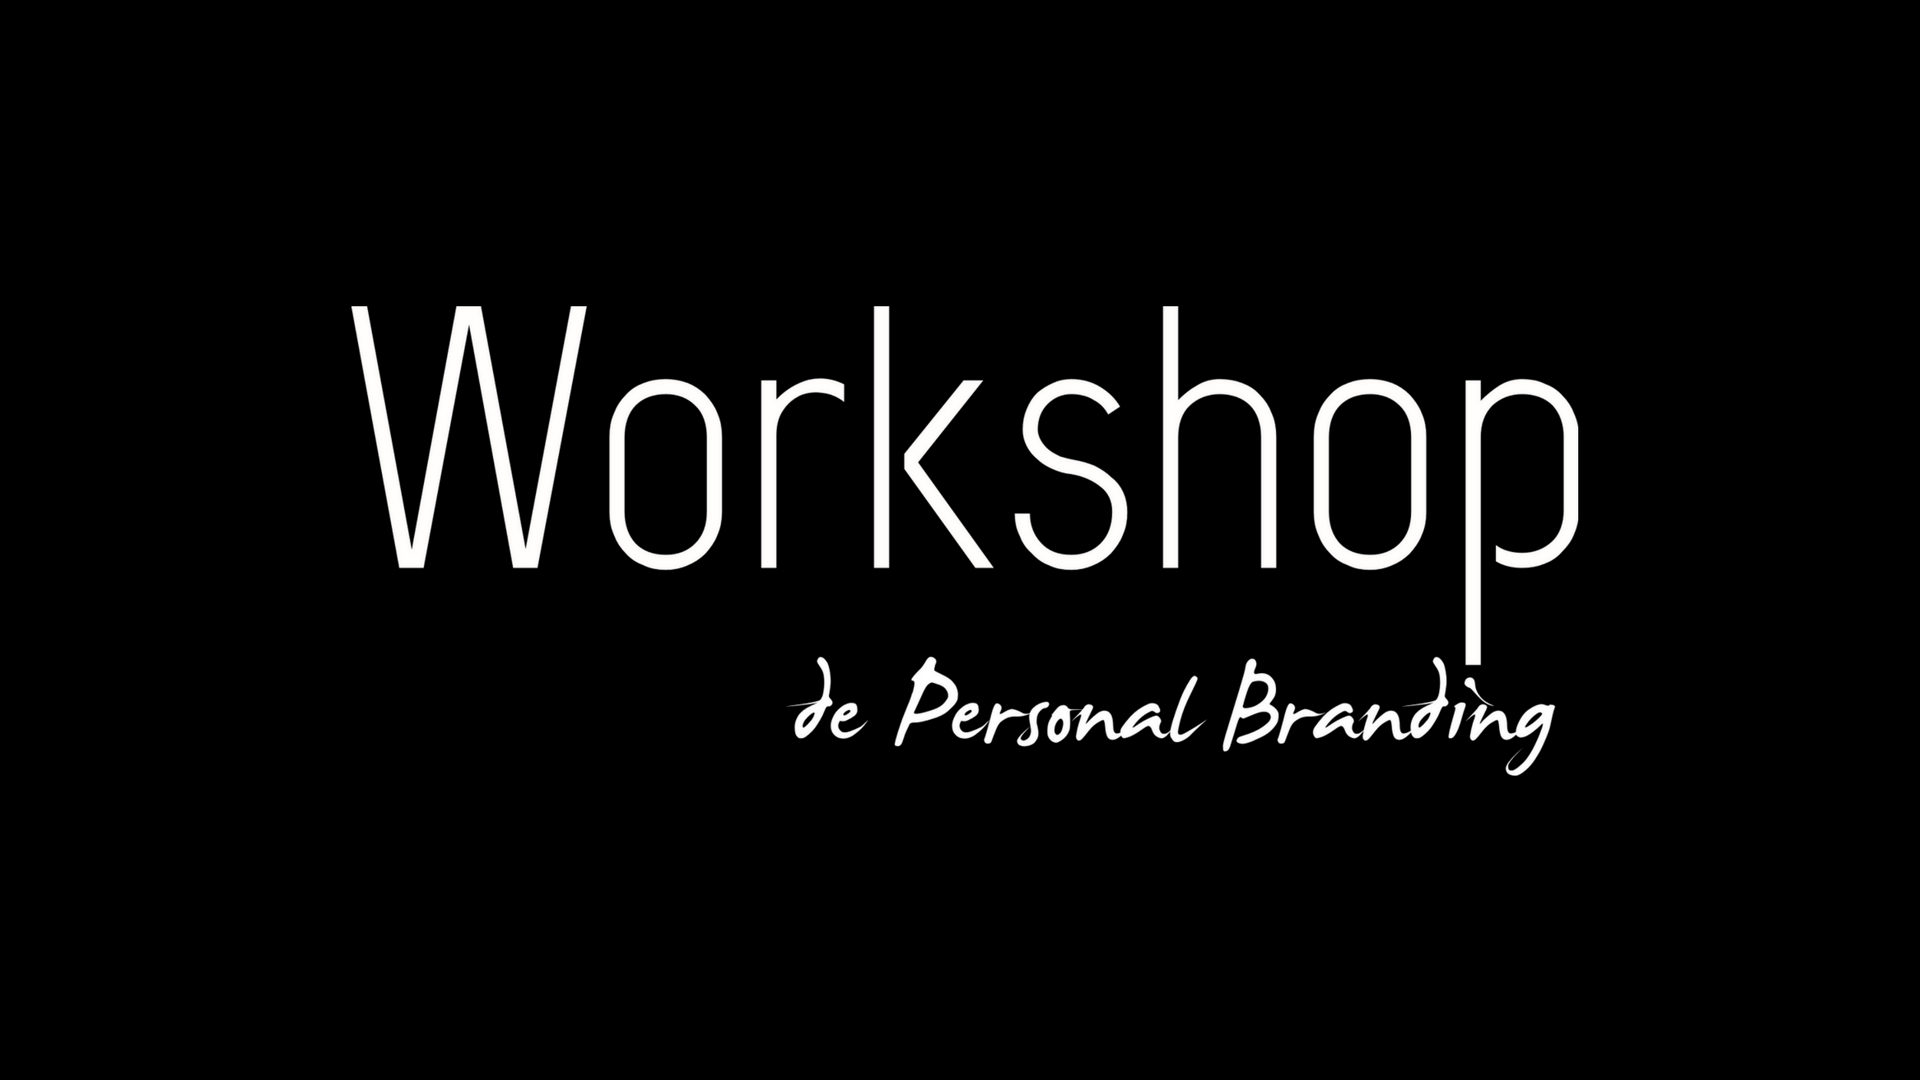 Workshop de Personal Branding